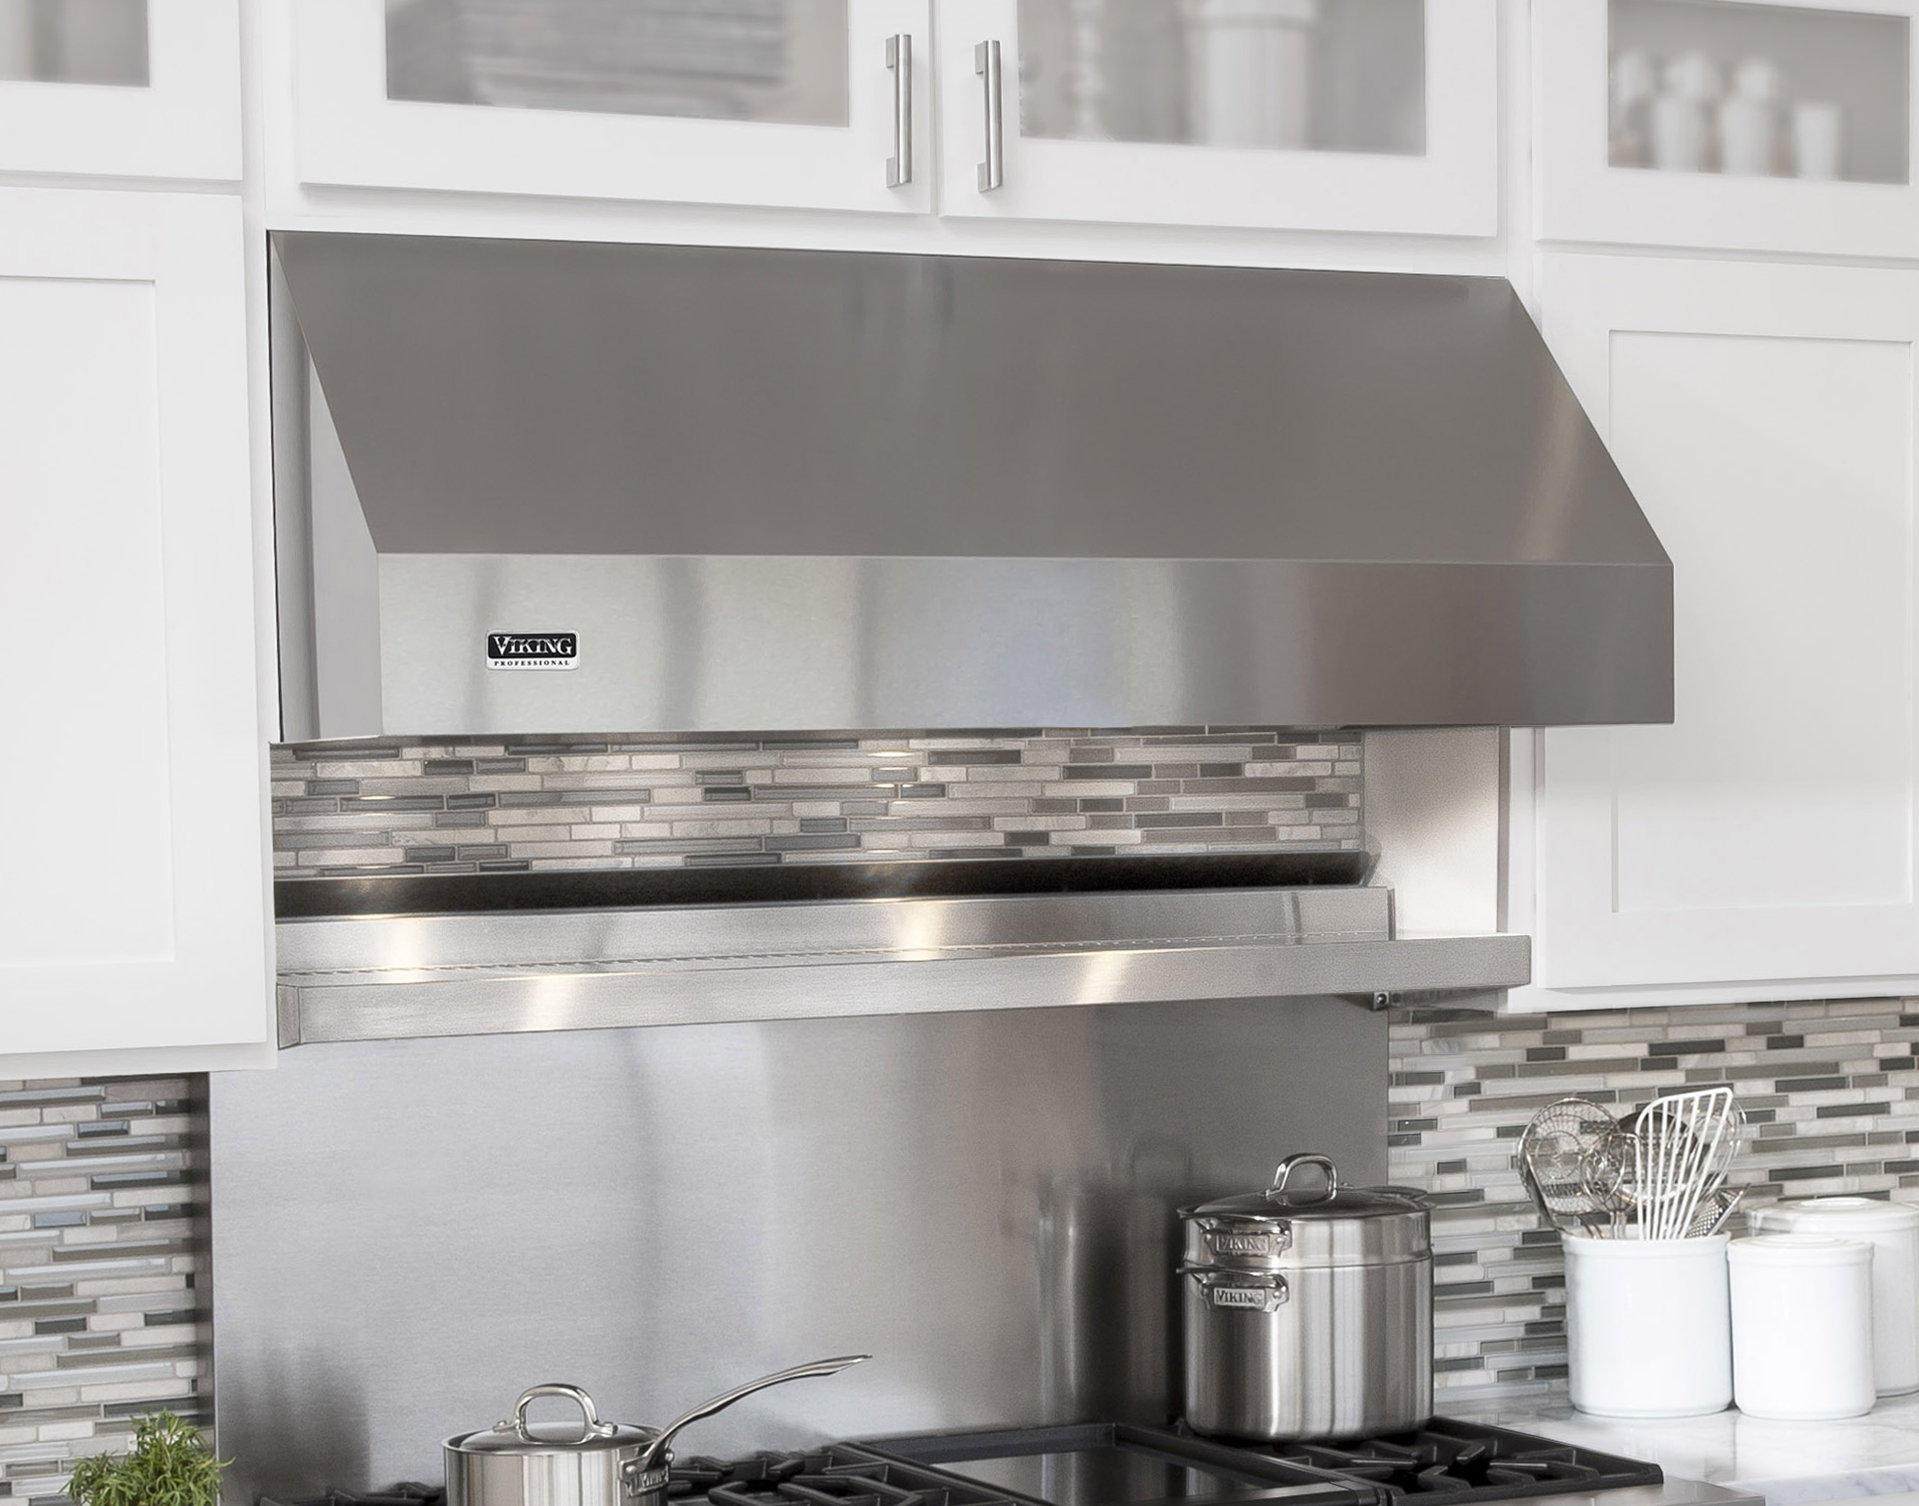 New Viking Kitchen Ventilation Hoods Deliver Professional Results For Your Home Kbis